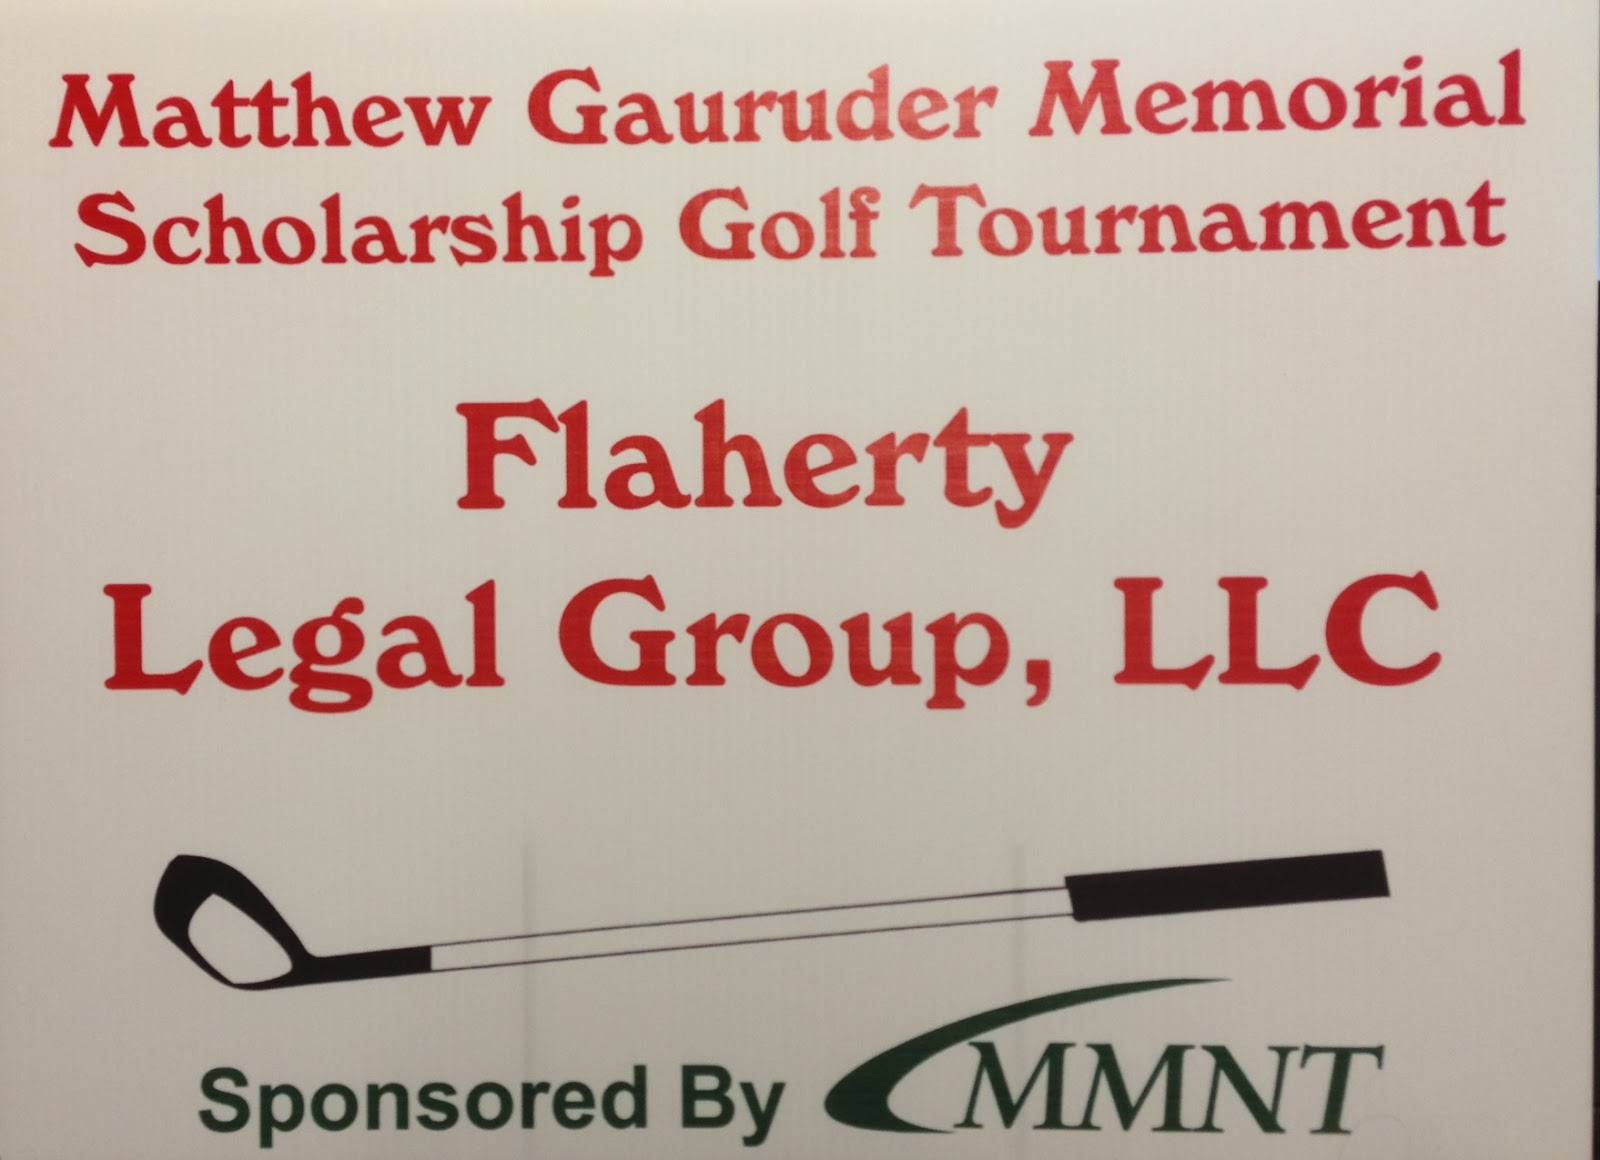 Flaherty Legal Group Tee Sponsor at Matthew Gauruder Memorial Scholoarship Golf Tournament